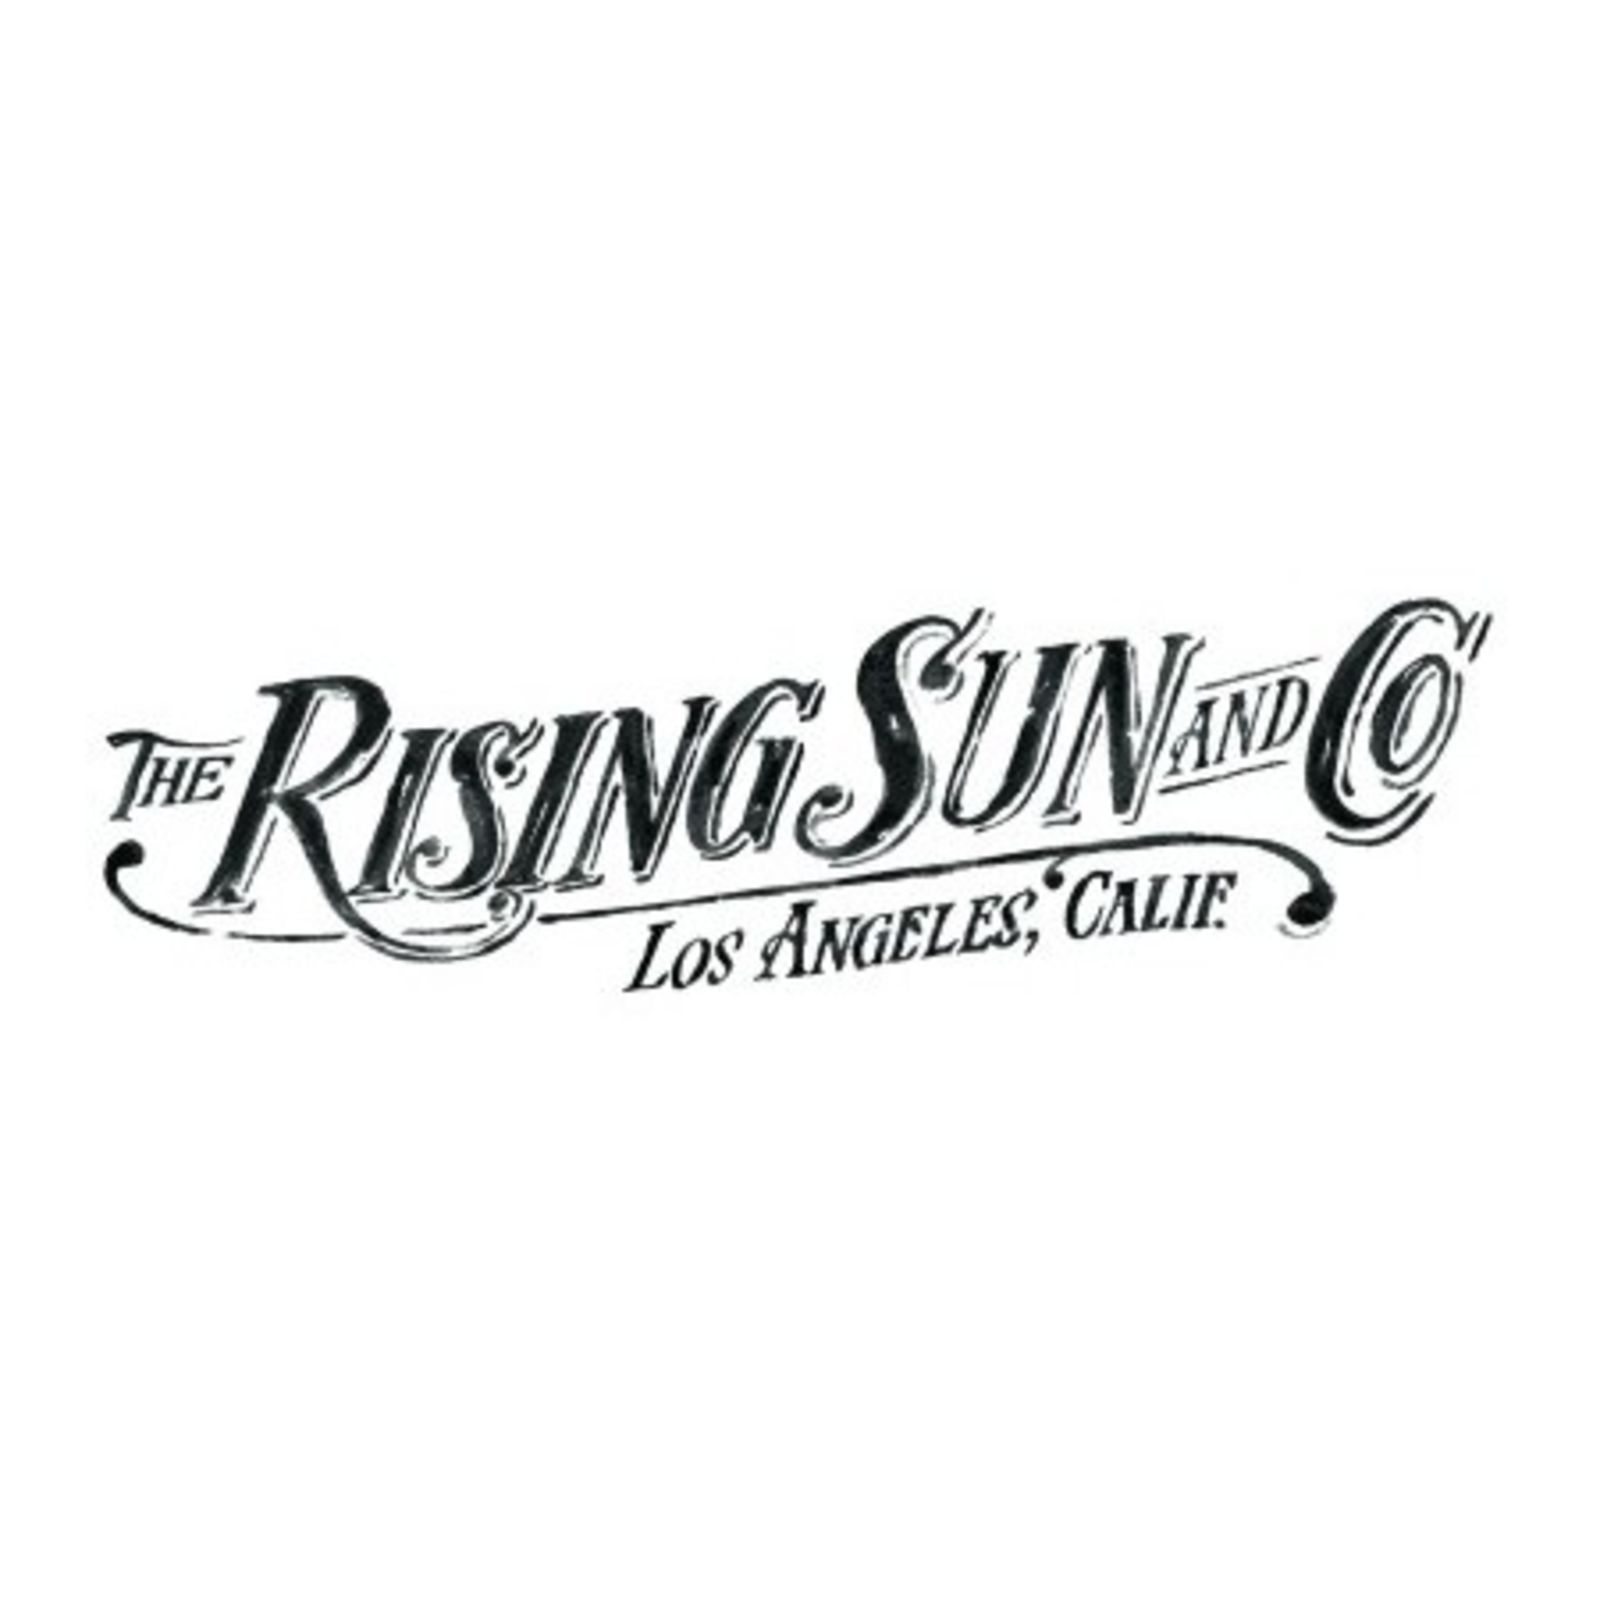 THE RISING SUN MFG